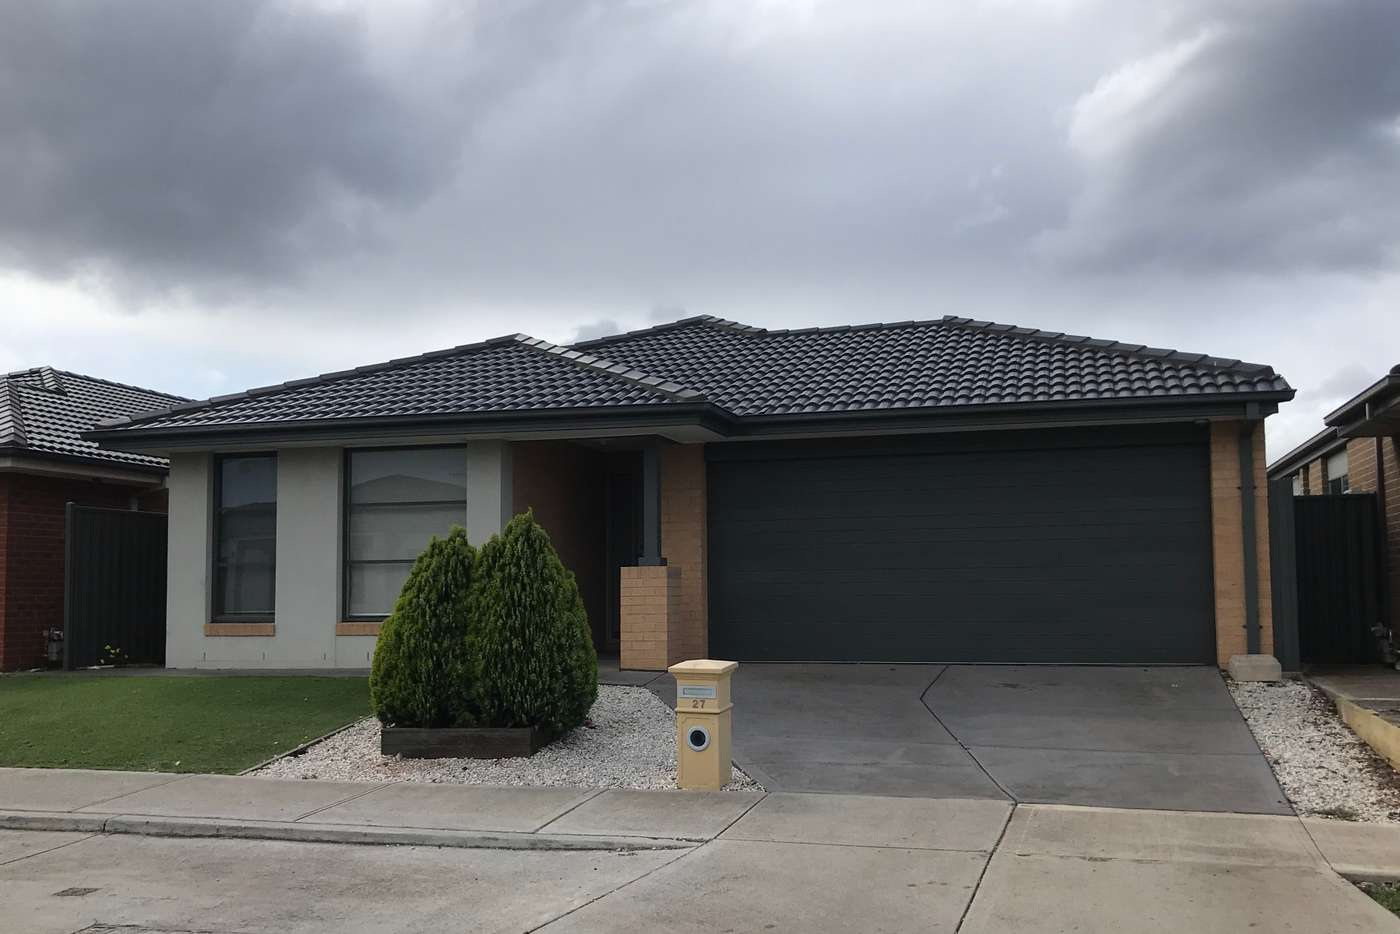 Main view of Homely house listing, 27 Marengo Street, Tarneit VIC 3029